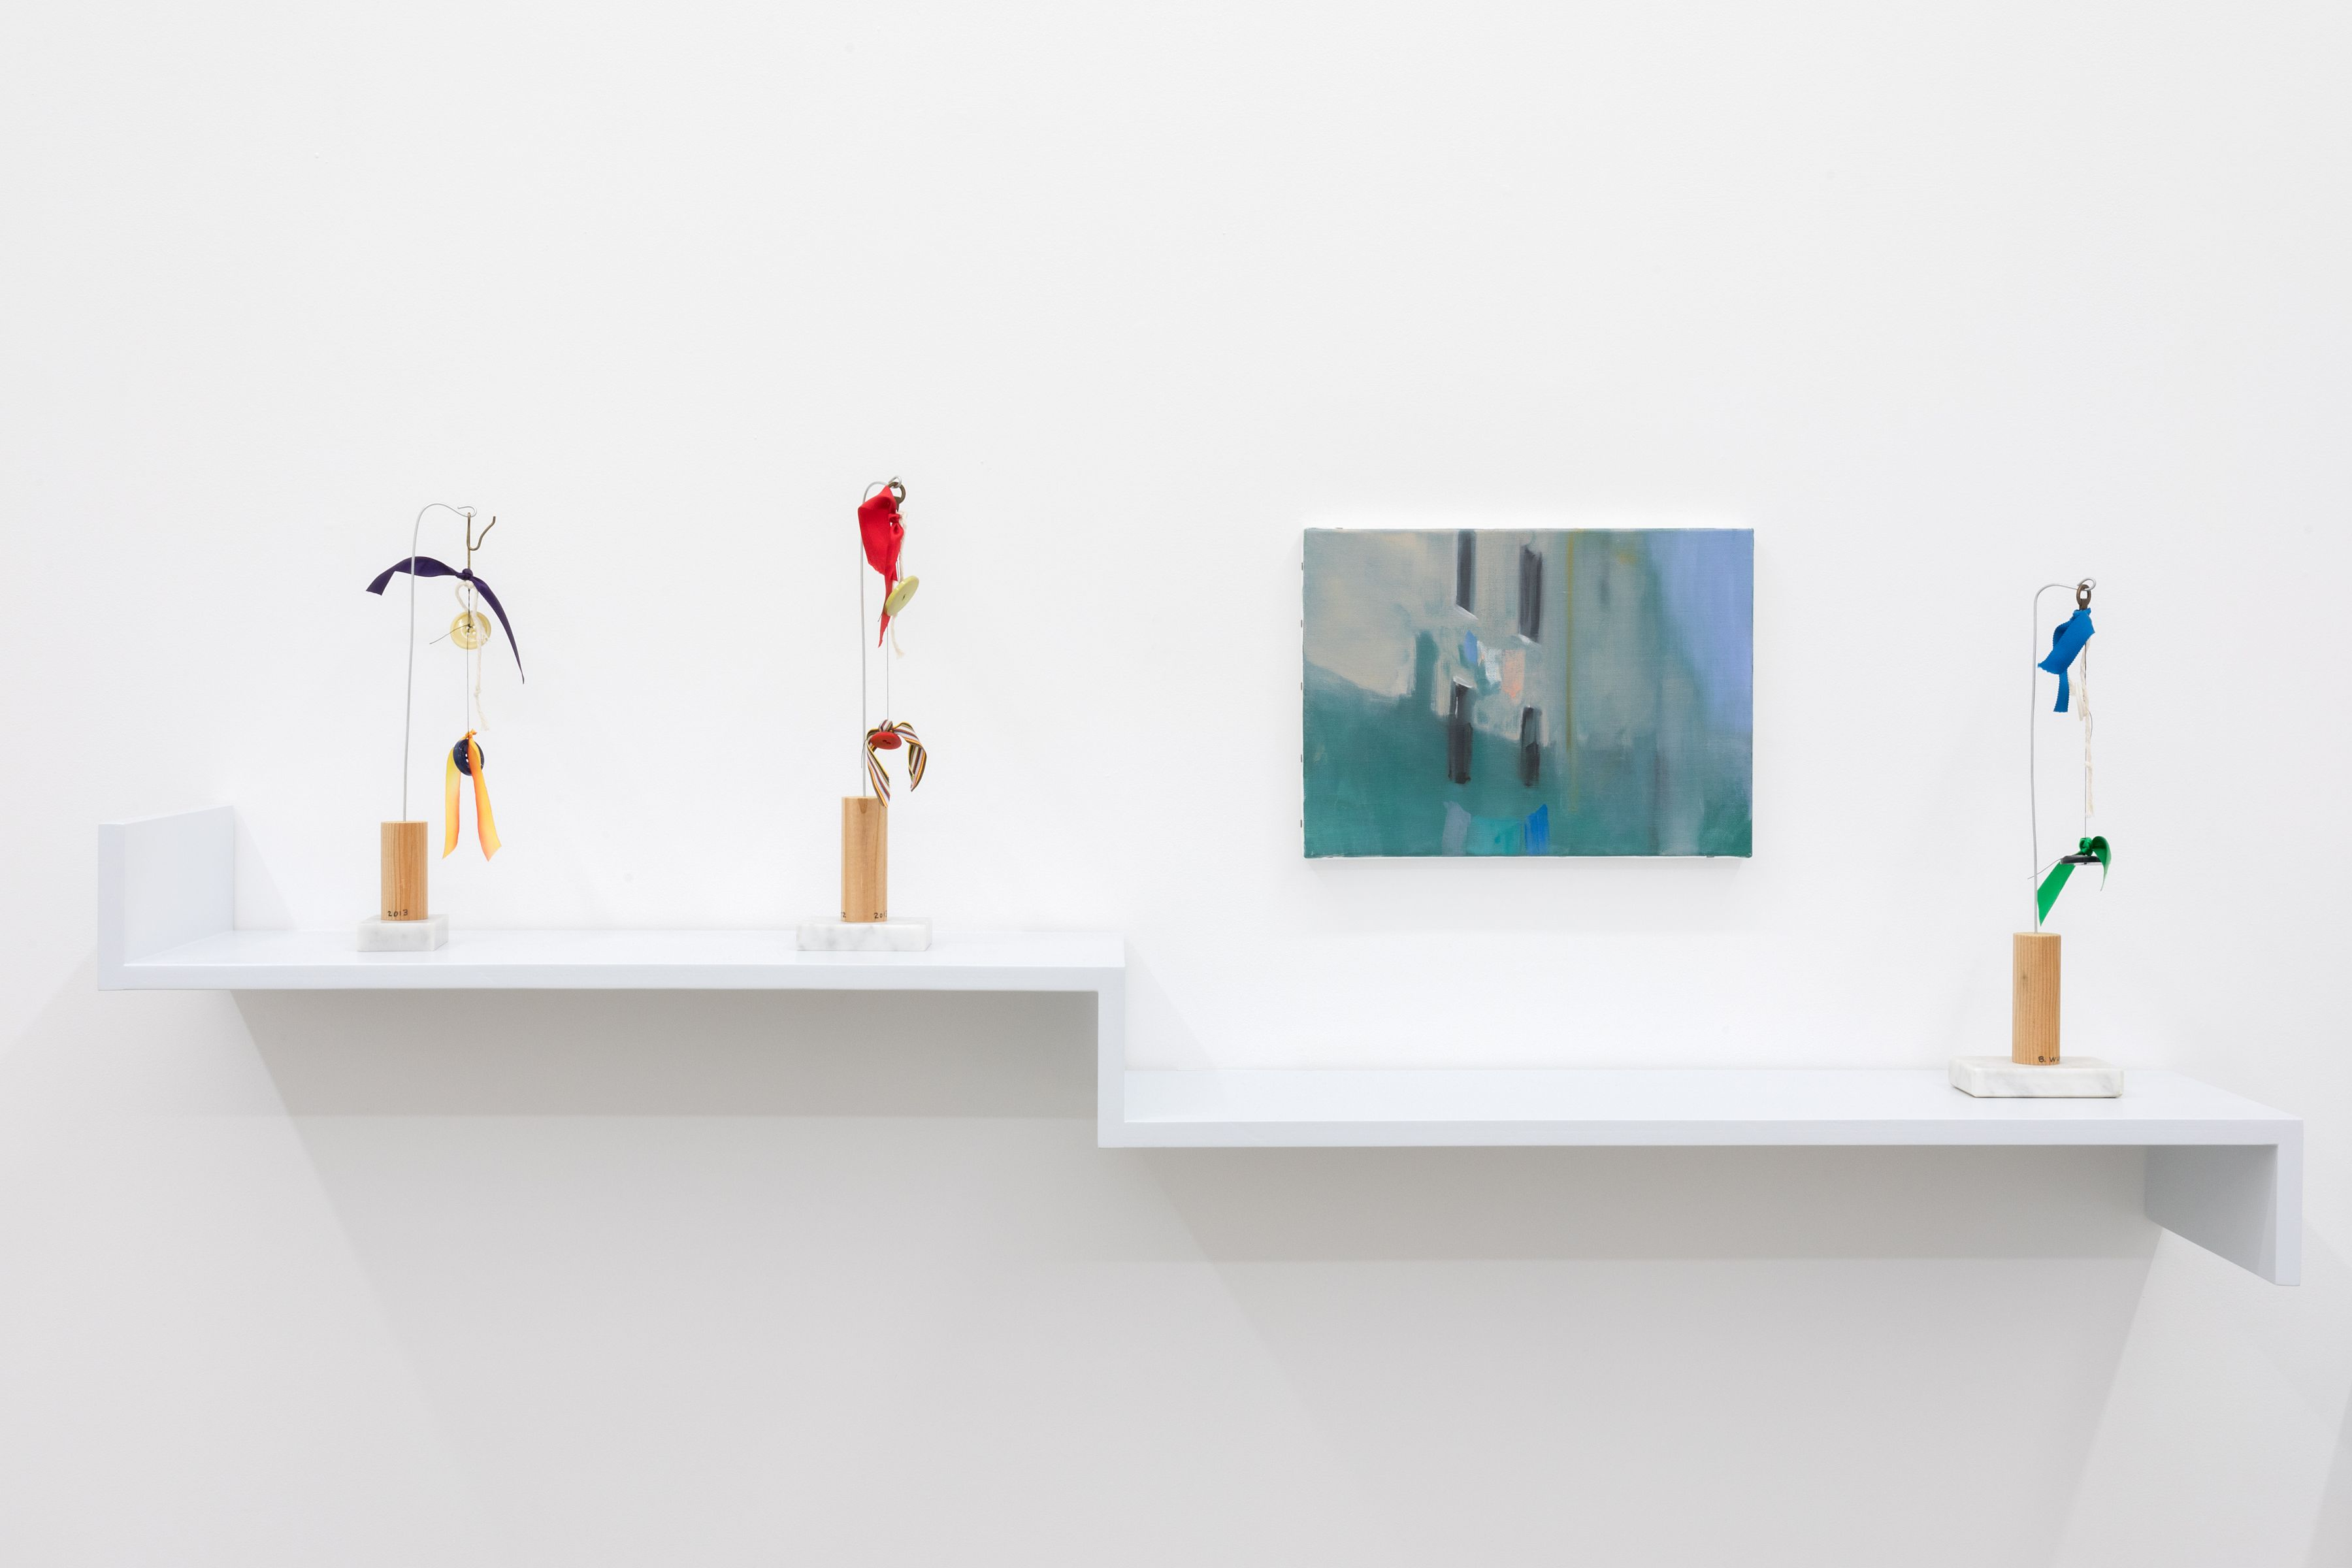 The thin gate clanged, Paul P. and B. Wurtz, Cooper Cole, Toronto, May 19 - June 23, 2018